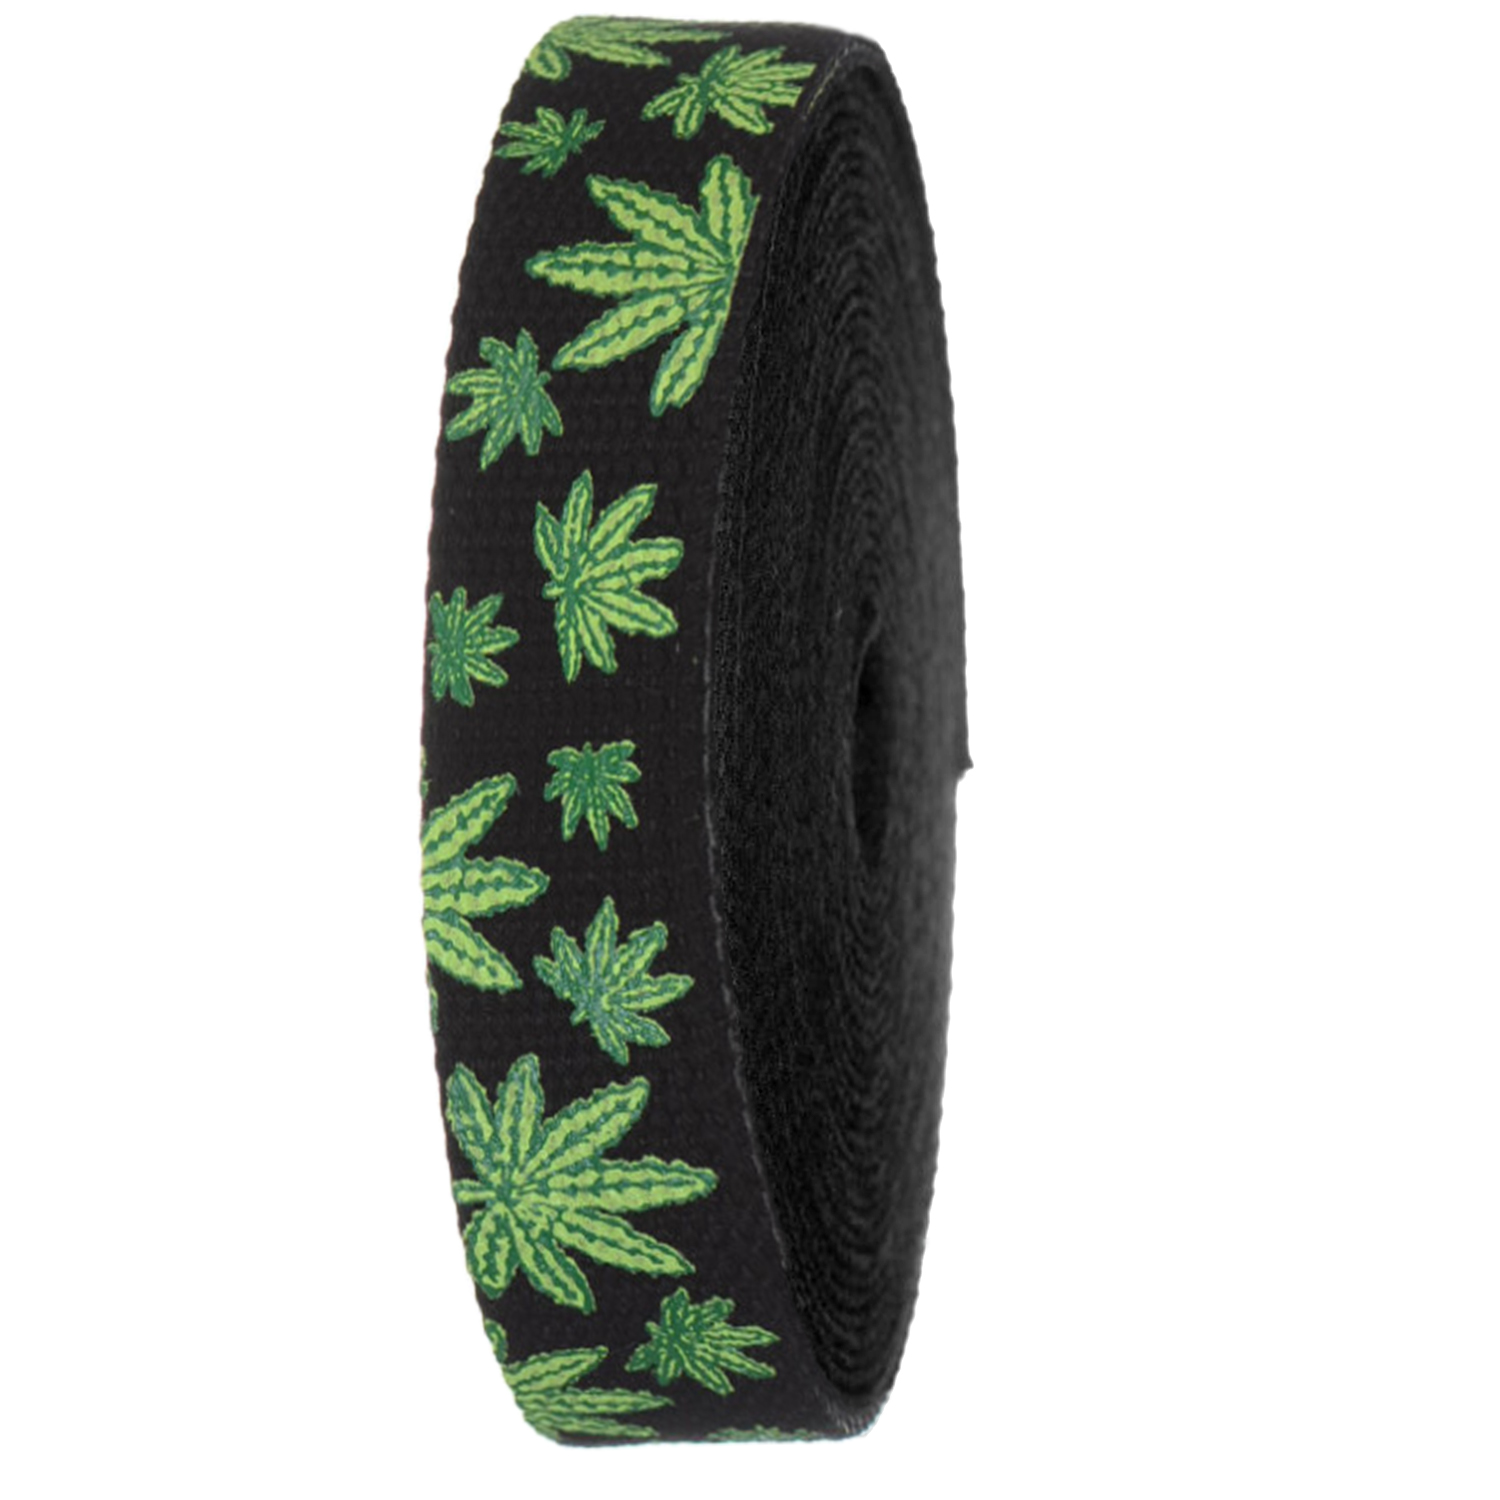 Crafts Weed Printed Heavy Canvas Webbing Roll 1.25 Width Durable Strap for Belts Bags